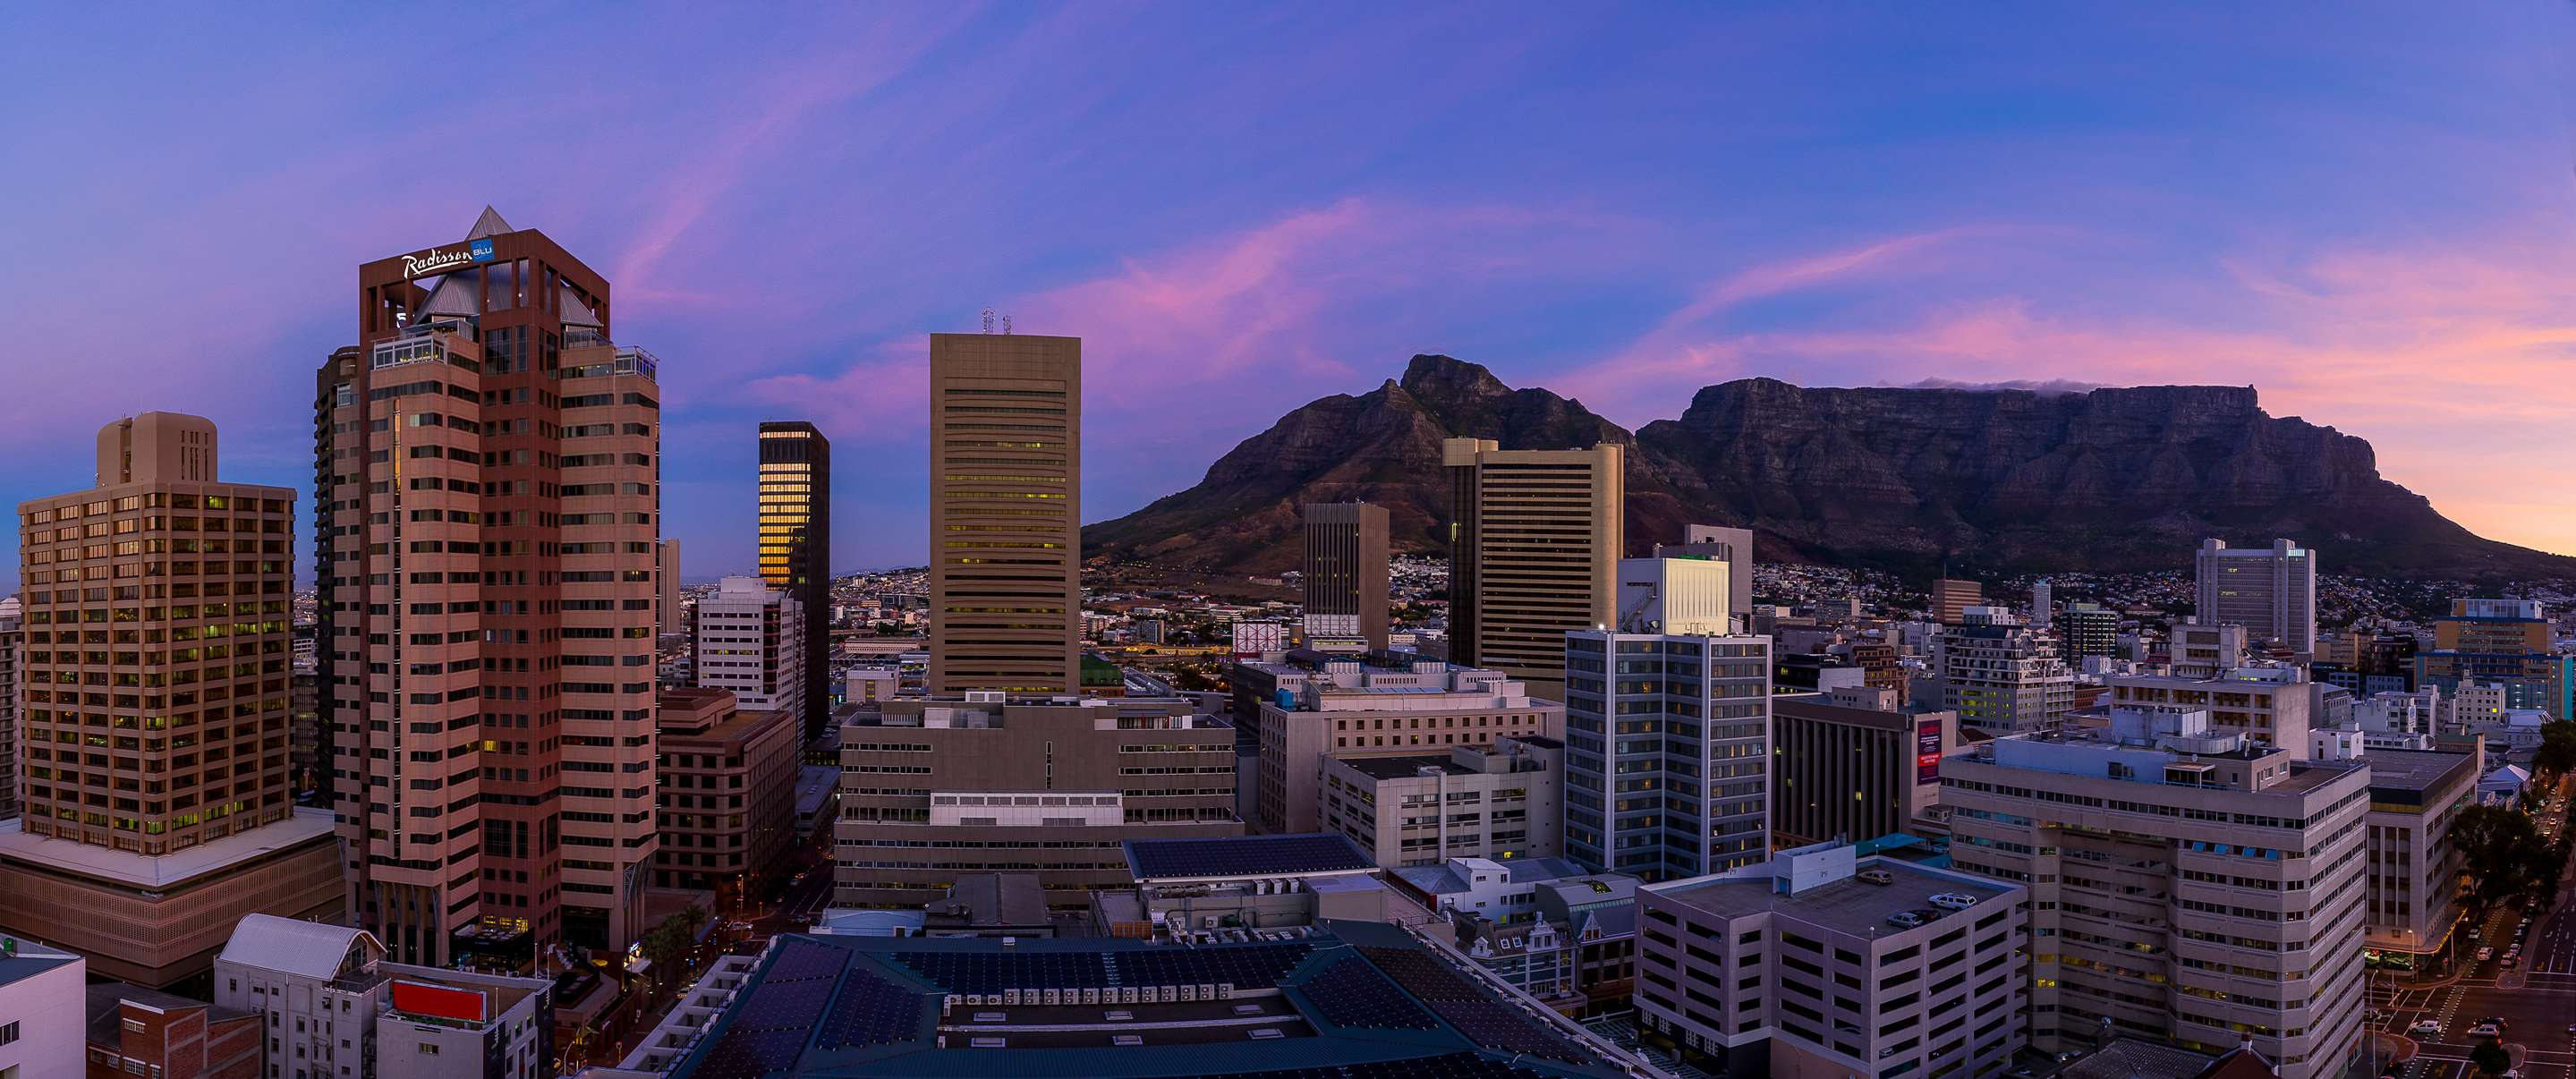 Hotel in Cape Town | Radisson Blu Hotel & Residence, Cape Town